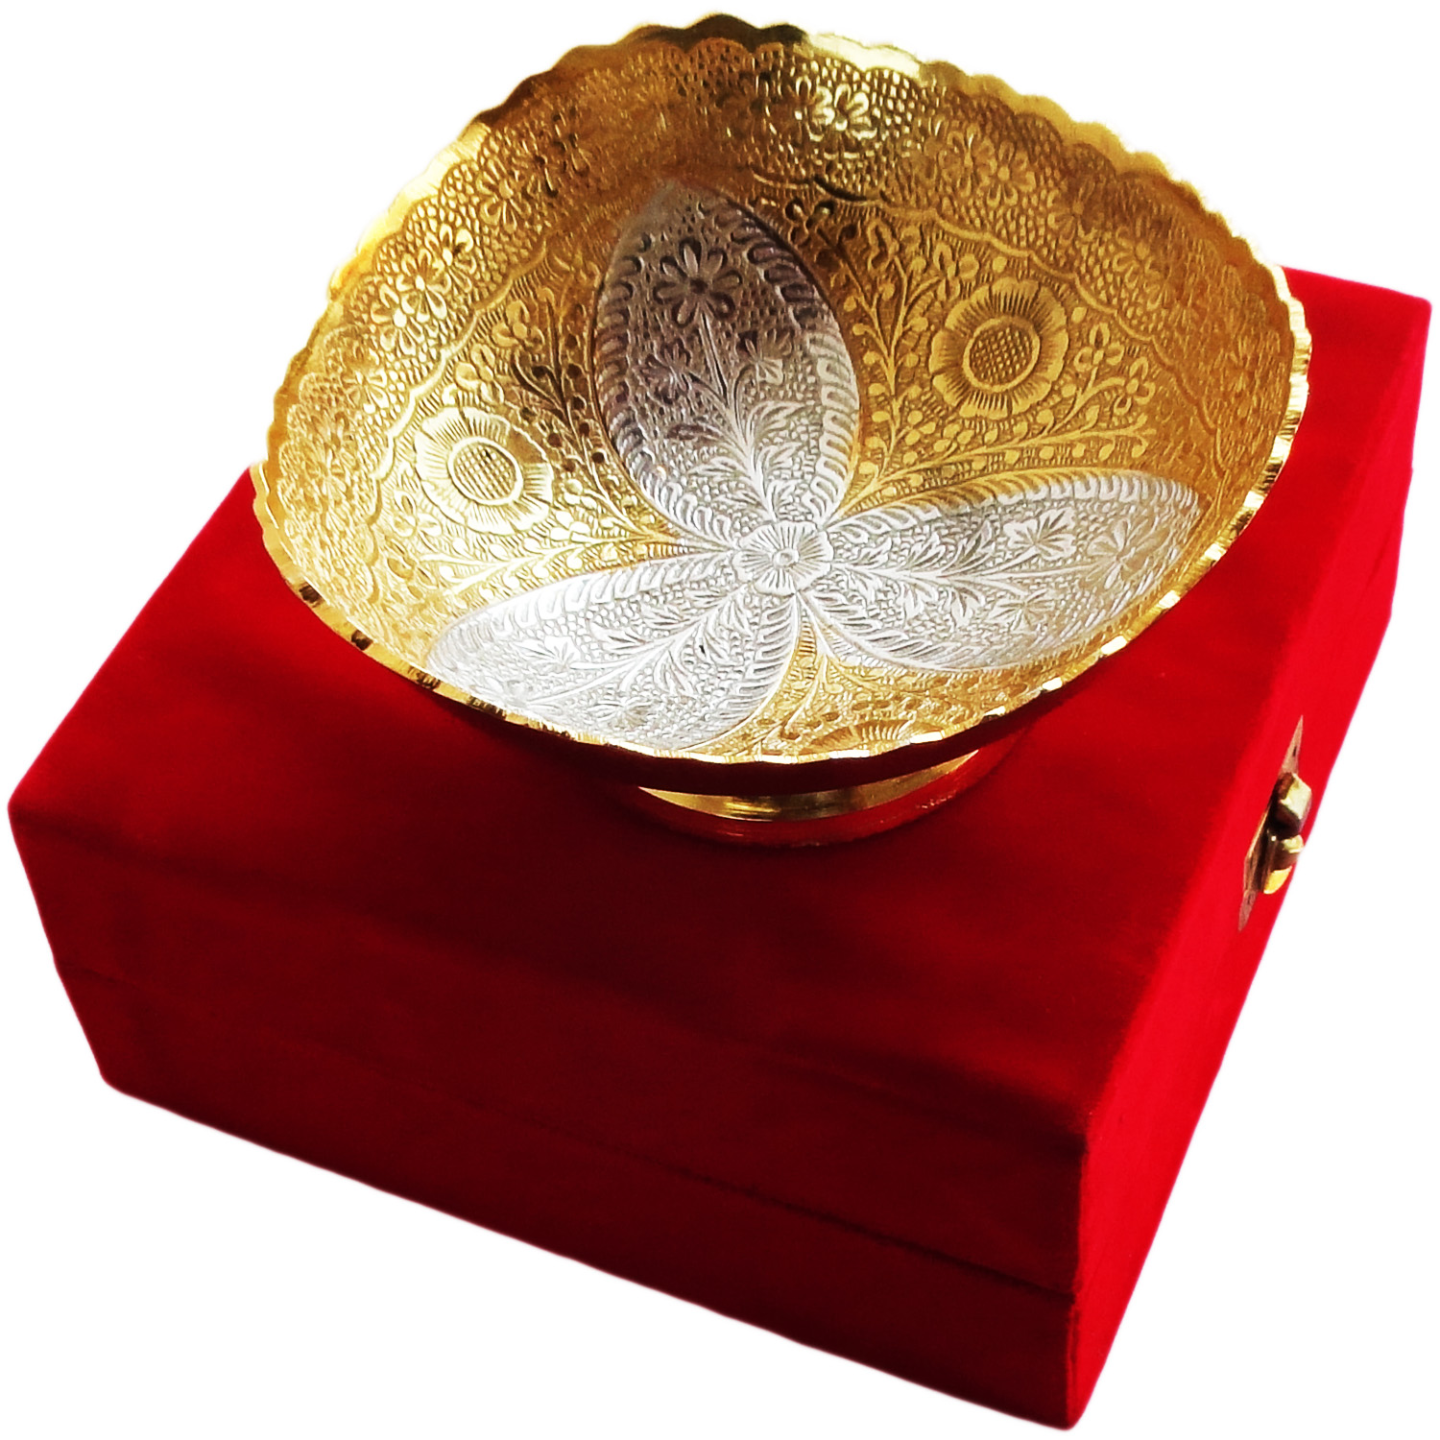 Brass Bowl With Brass Finish - 6 Inch (B064)